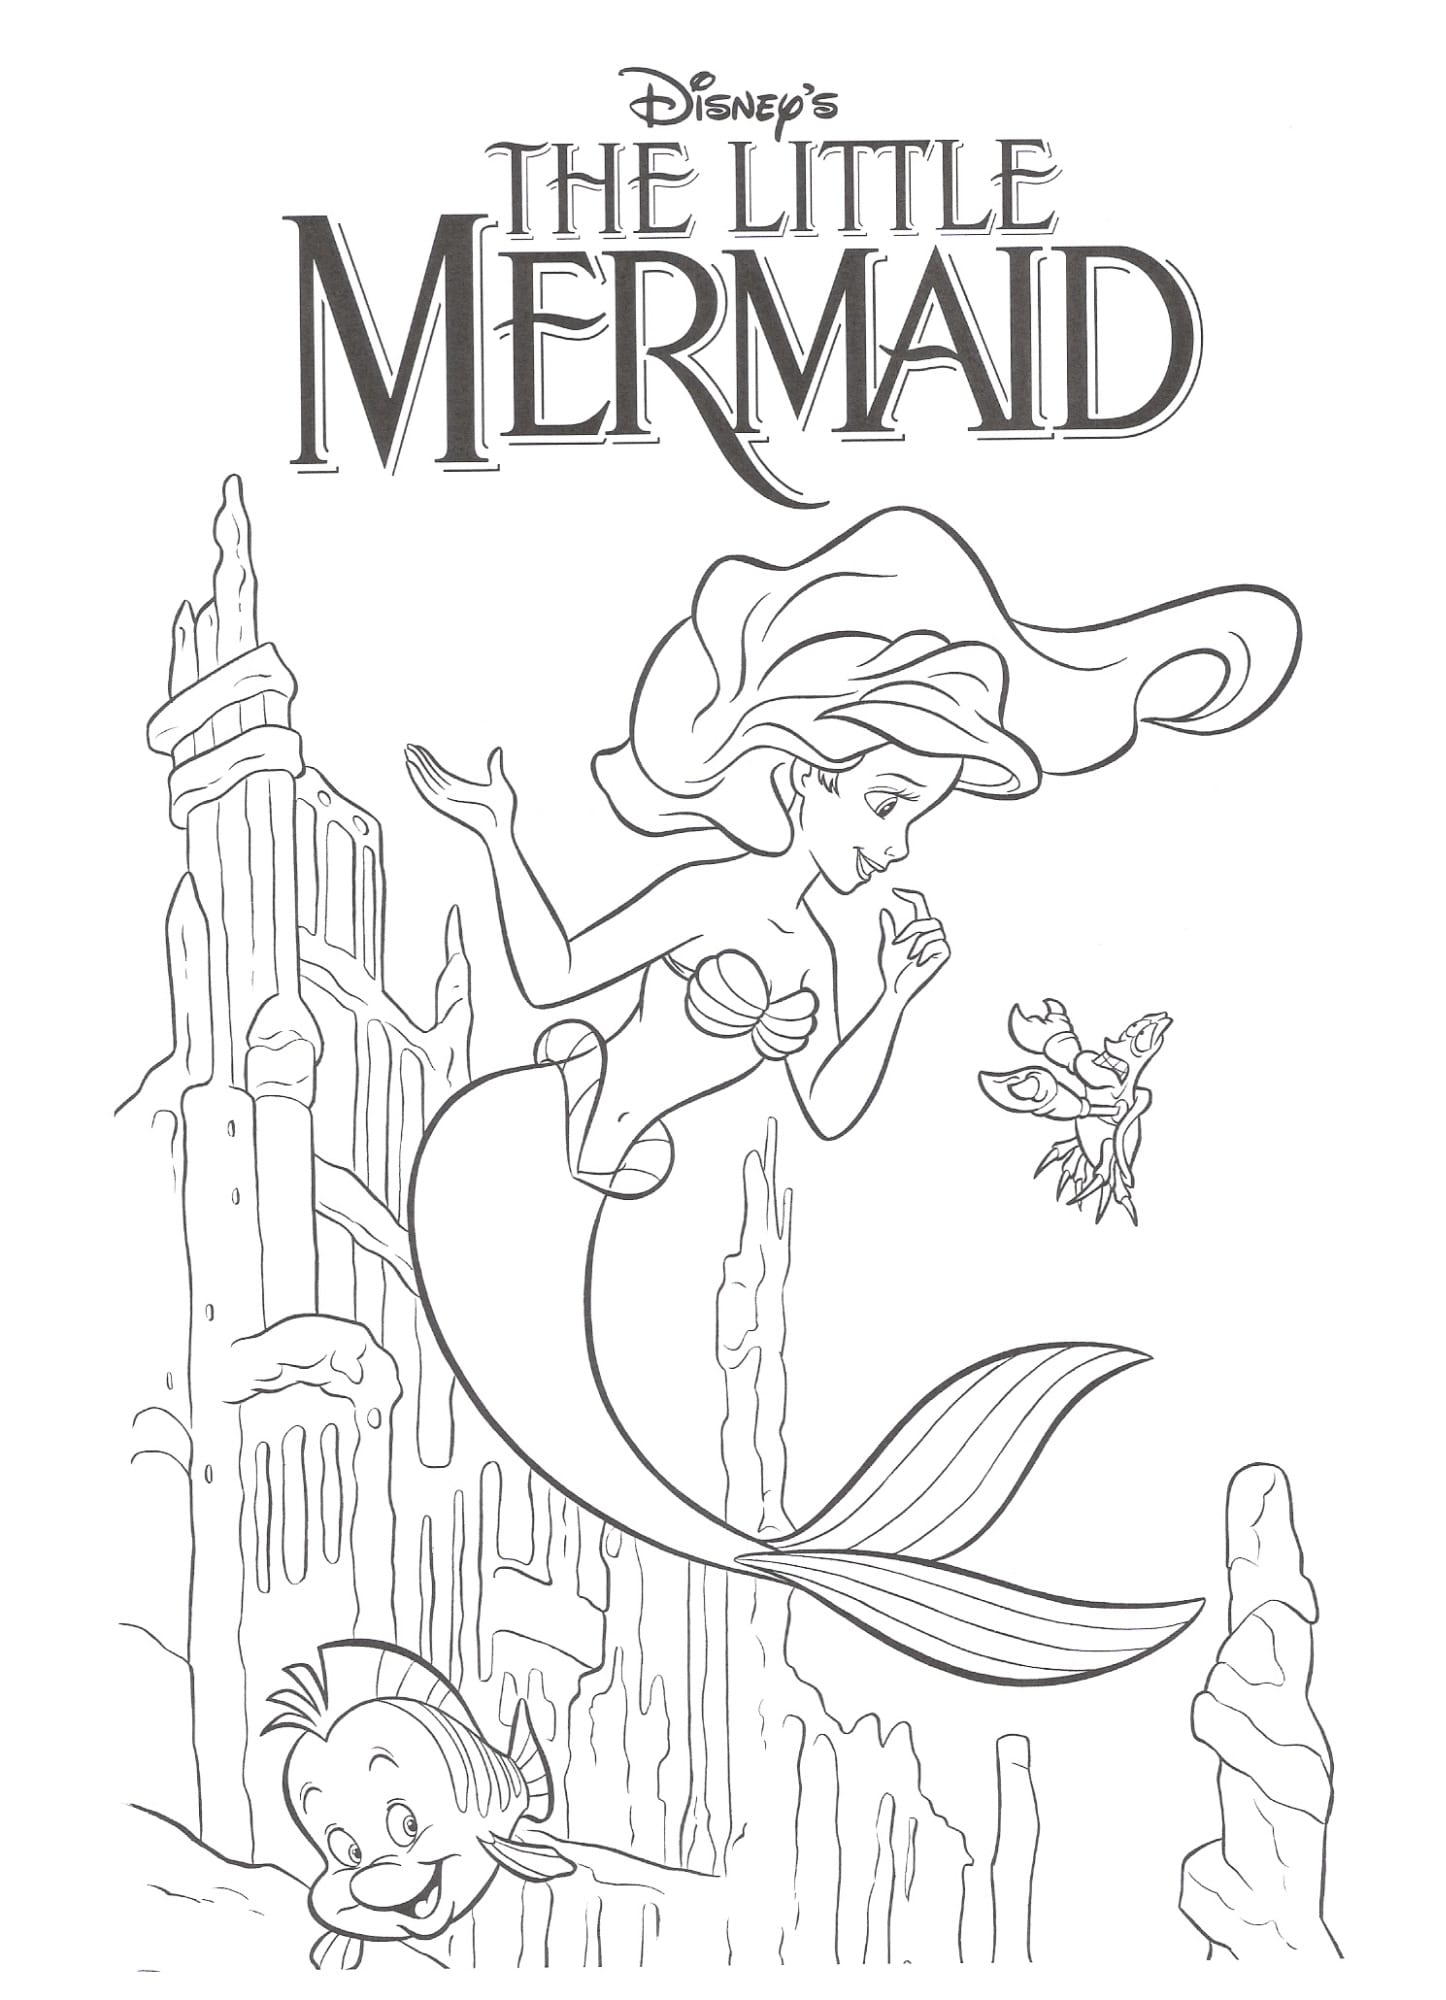 The Little Mermaid Coloring Pages9 Kids Throughout Pages On 2 10